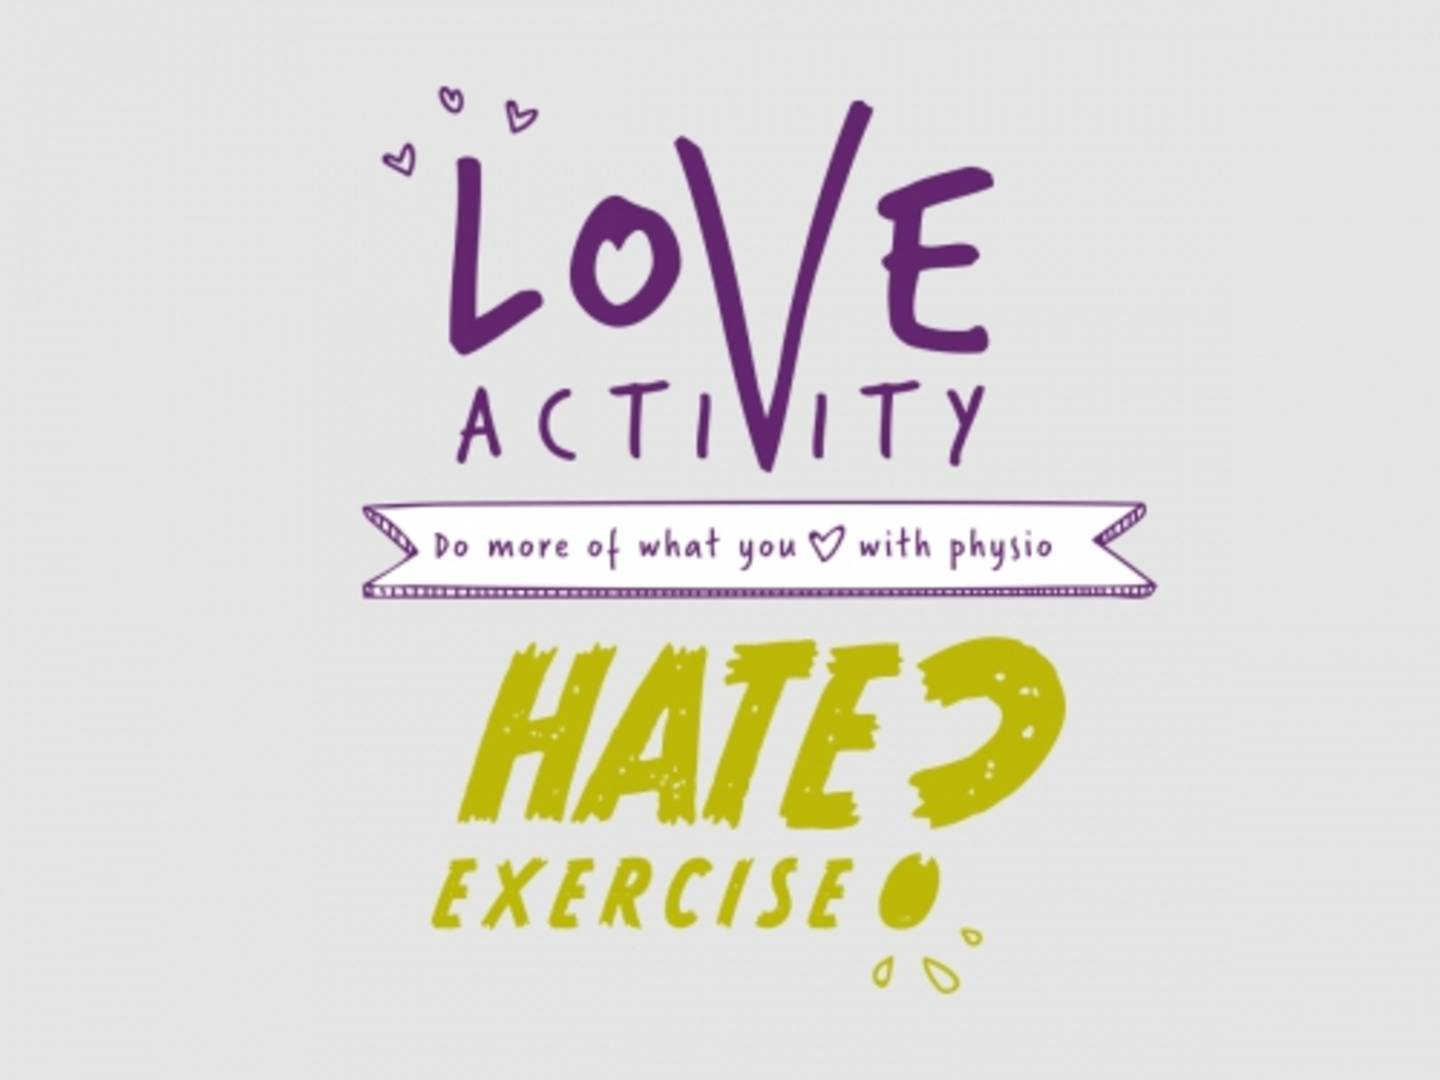 Campaign graphic for Love Activity, Hate Exercise campaign